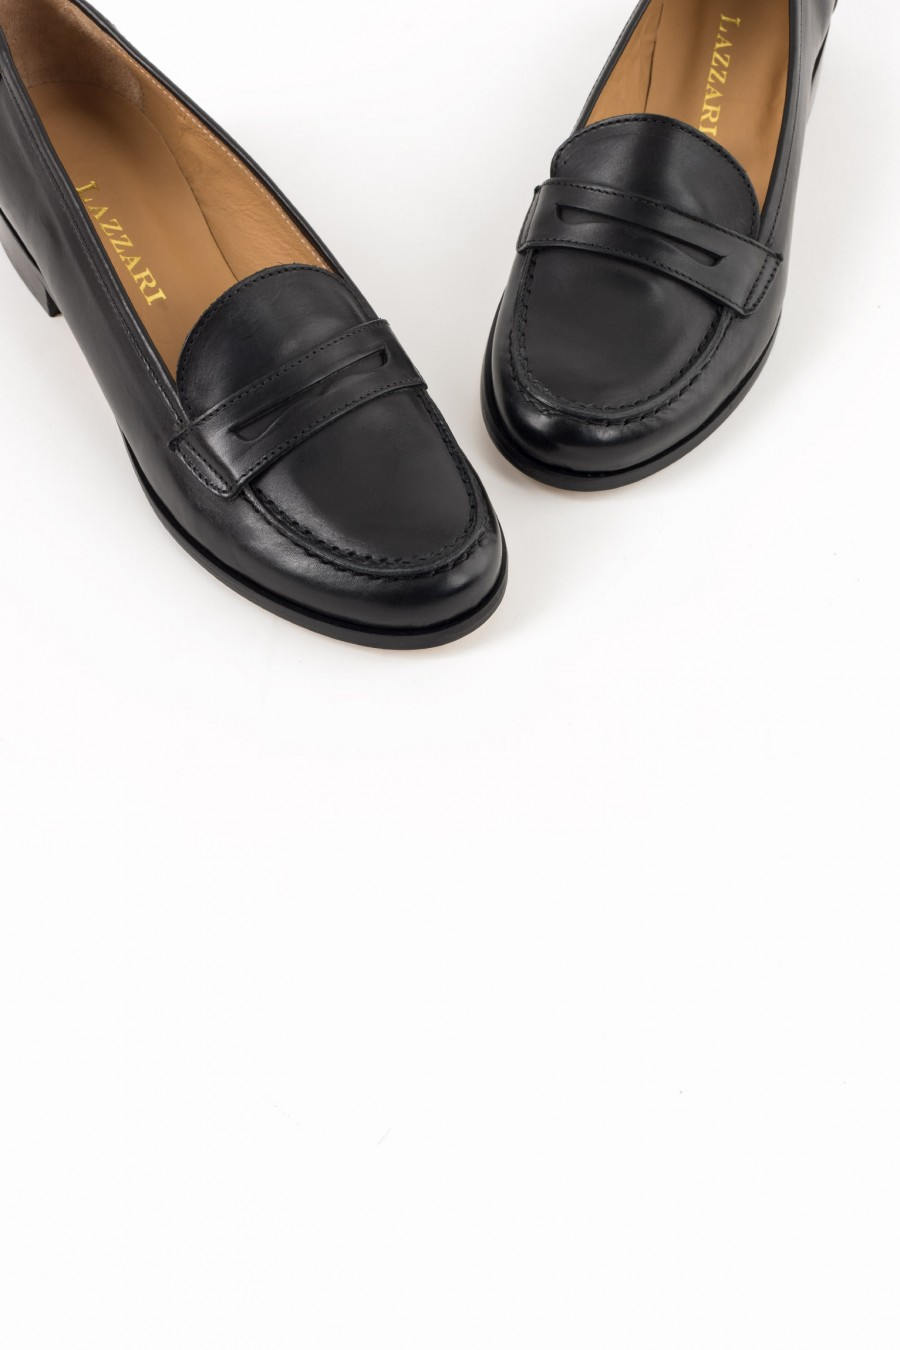 Classic black leather flats